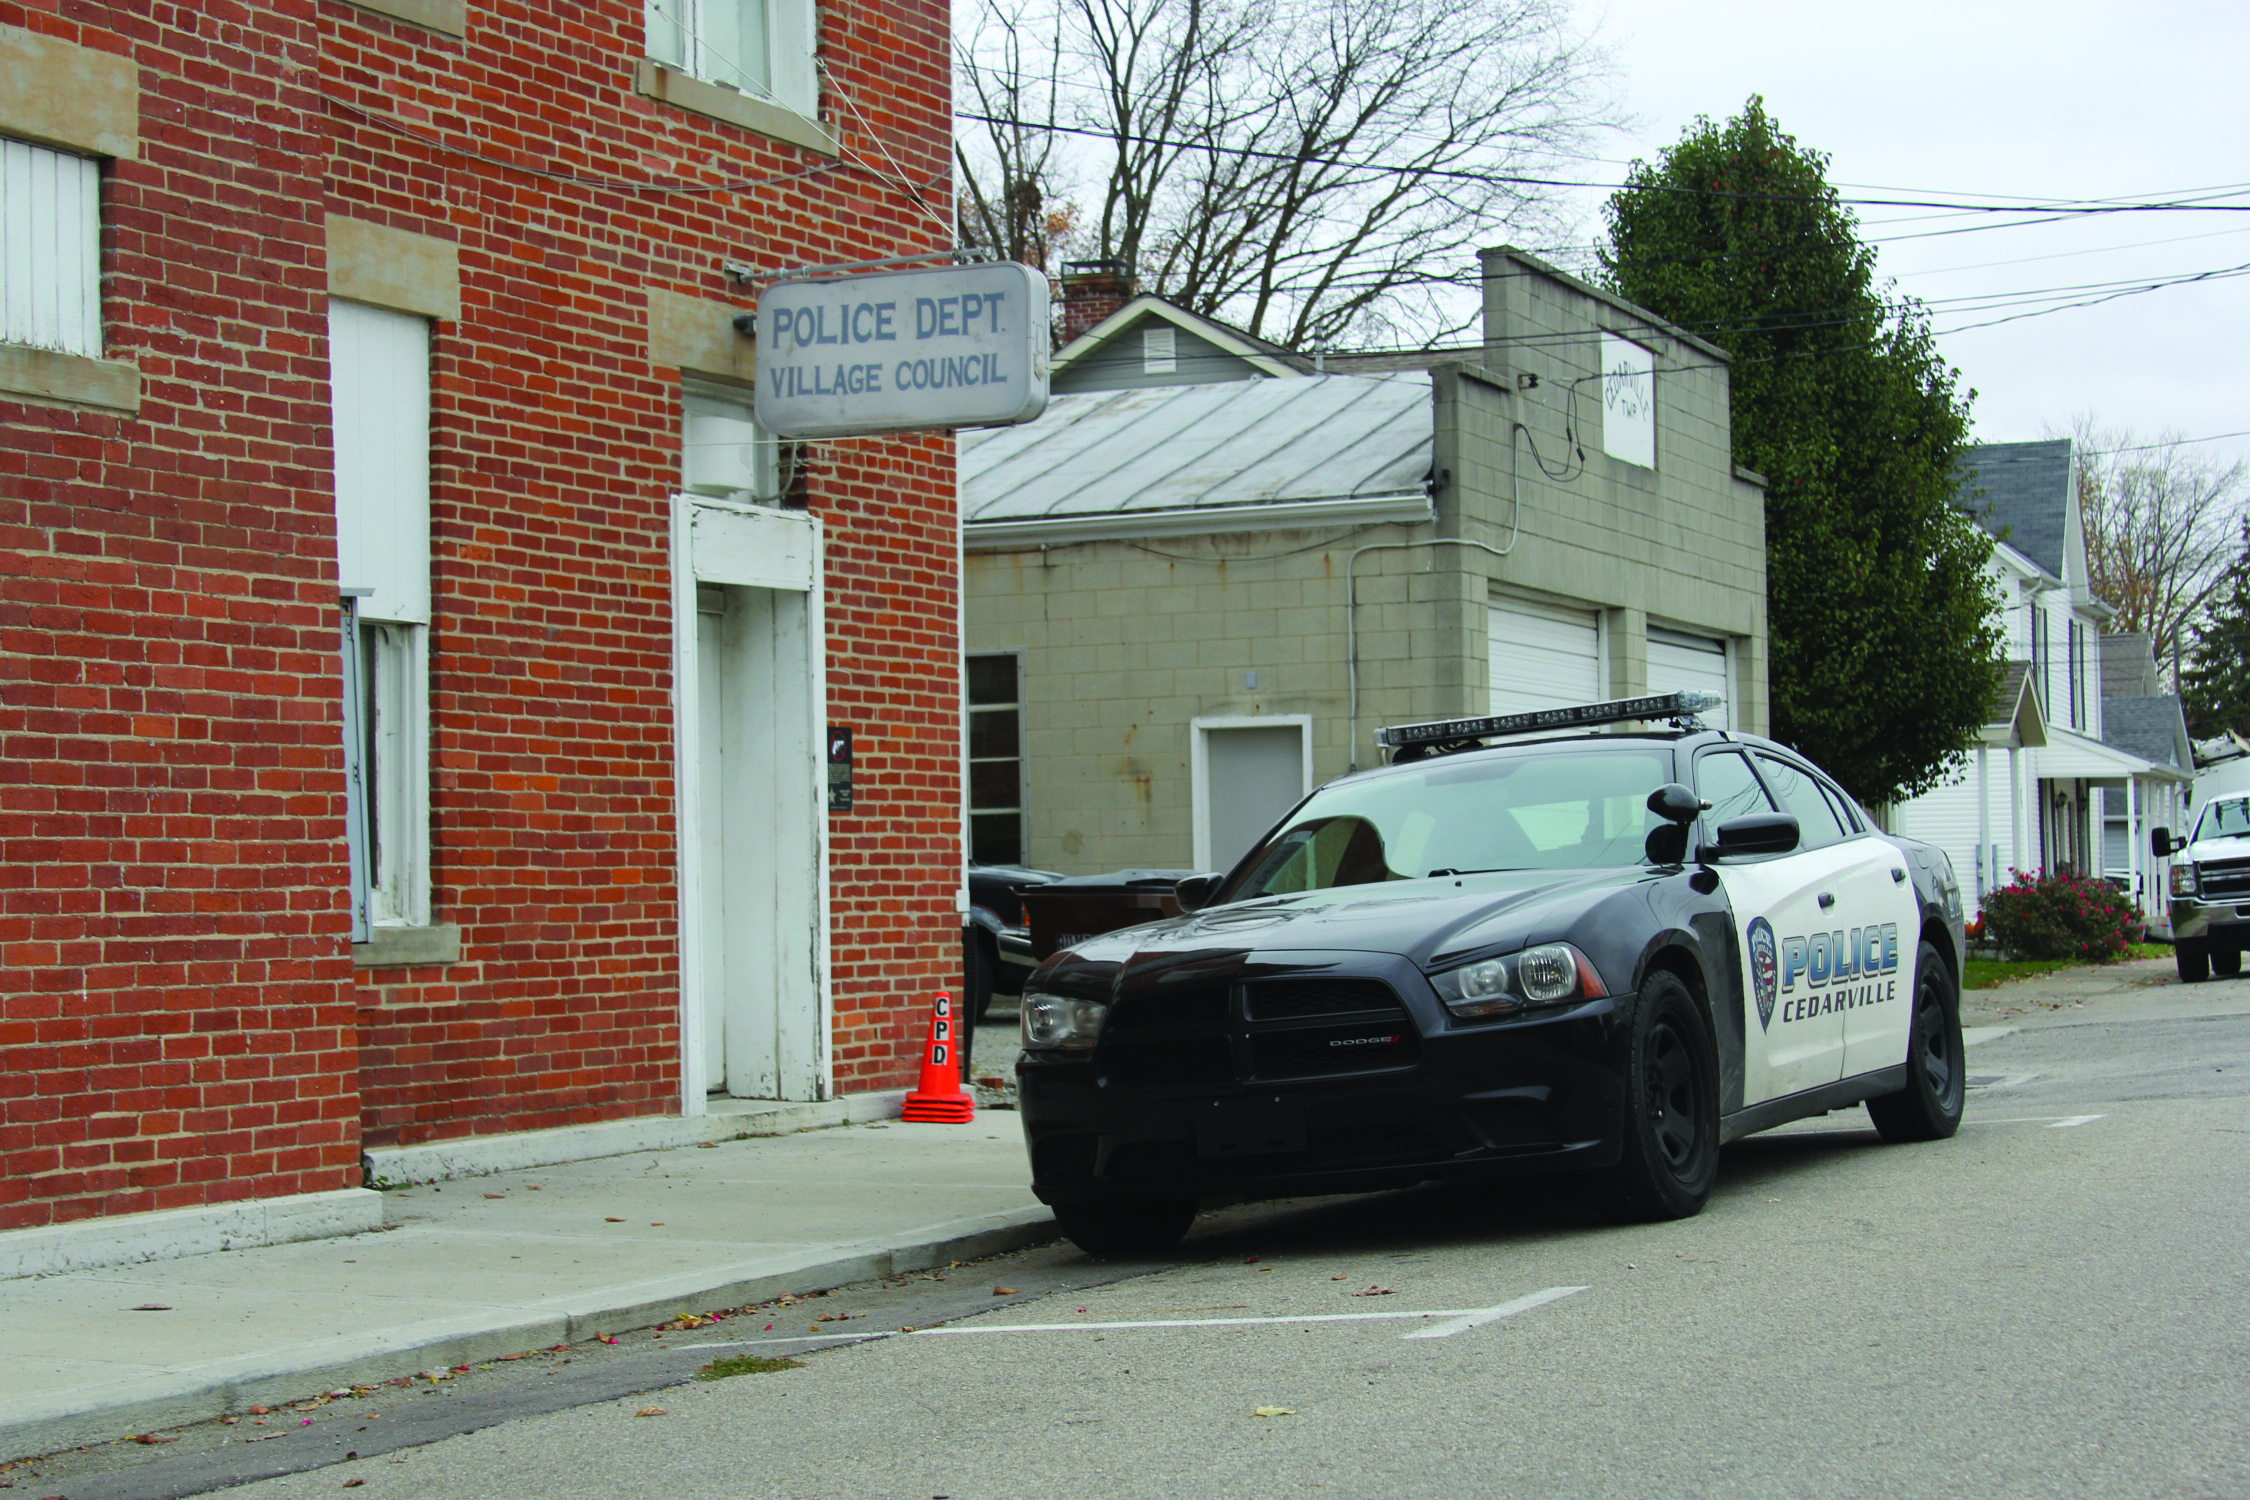 The police department shares space with the Village Council in the Opera House building. The only available space for parking the police cruisers is on the side of the street. [Photo by Keegan D'Alfonso]